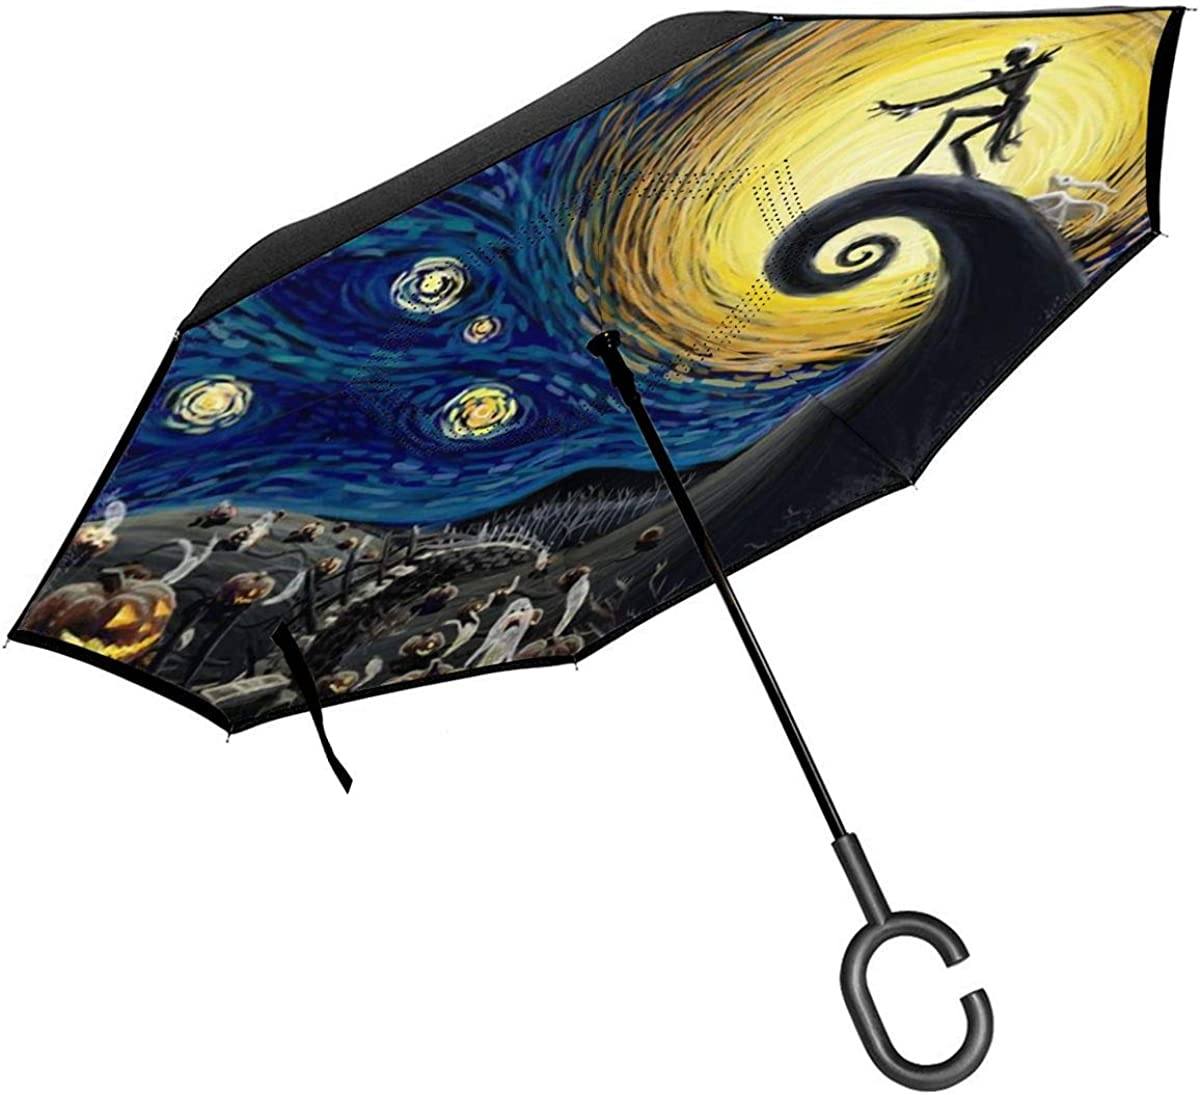 Dino In Scandinavian Style Double Layer Windproof UV Protection Reverse Umbrella With C-Shaped Handle Upside-Down Inverted Umbrella For Car Rain Outdoor